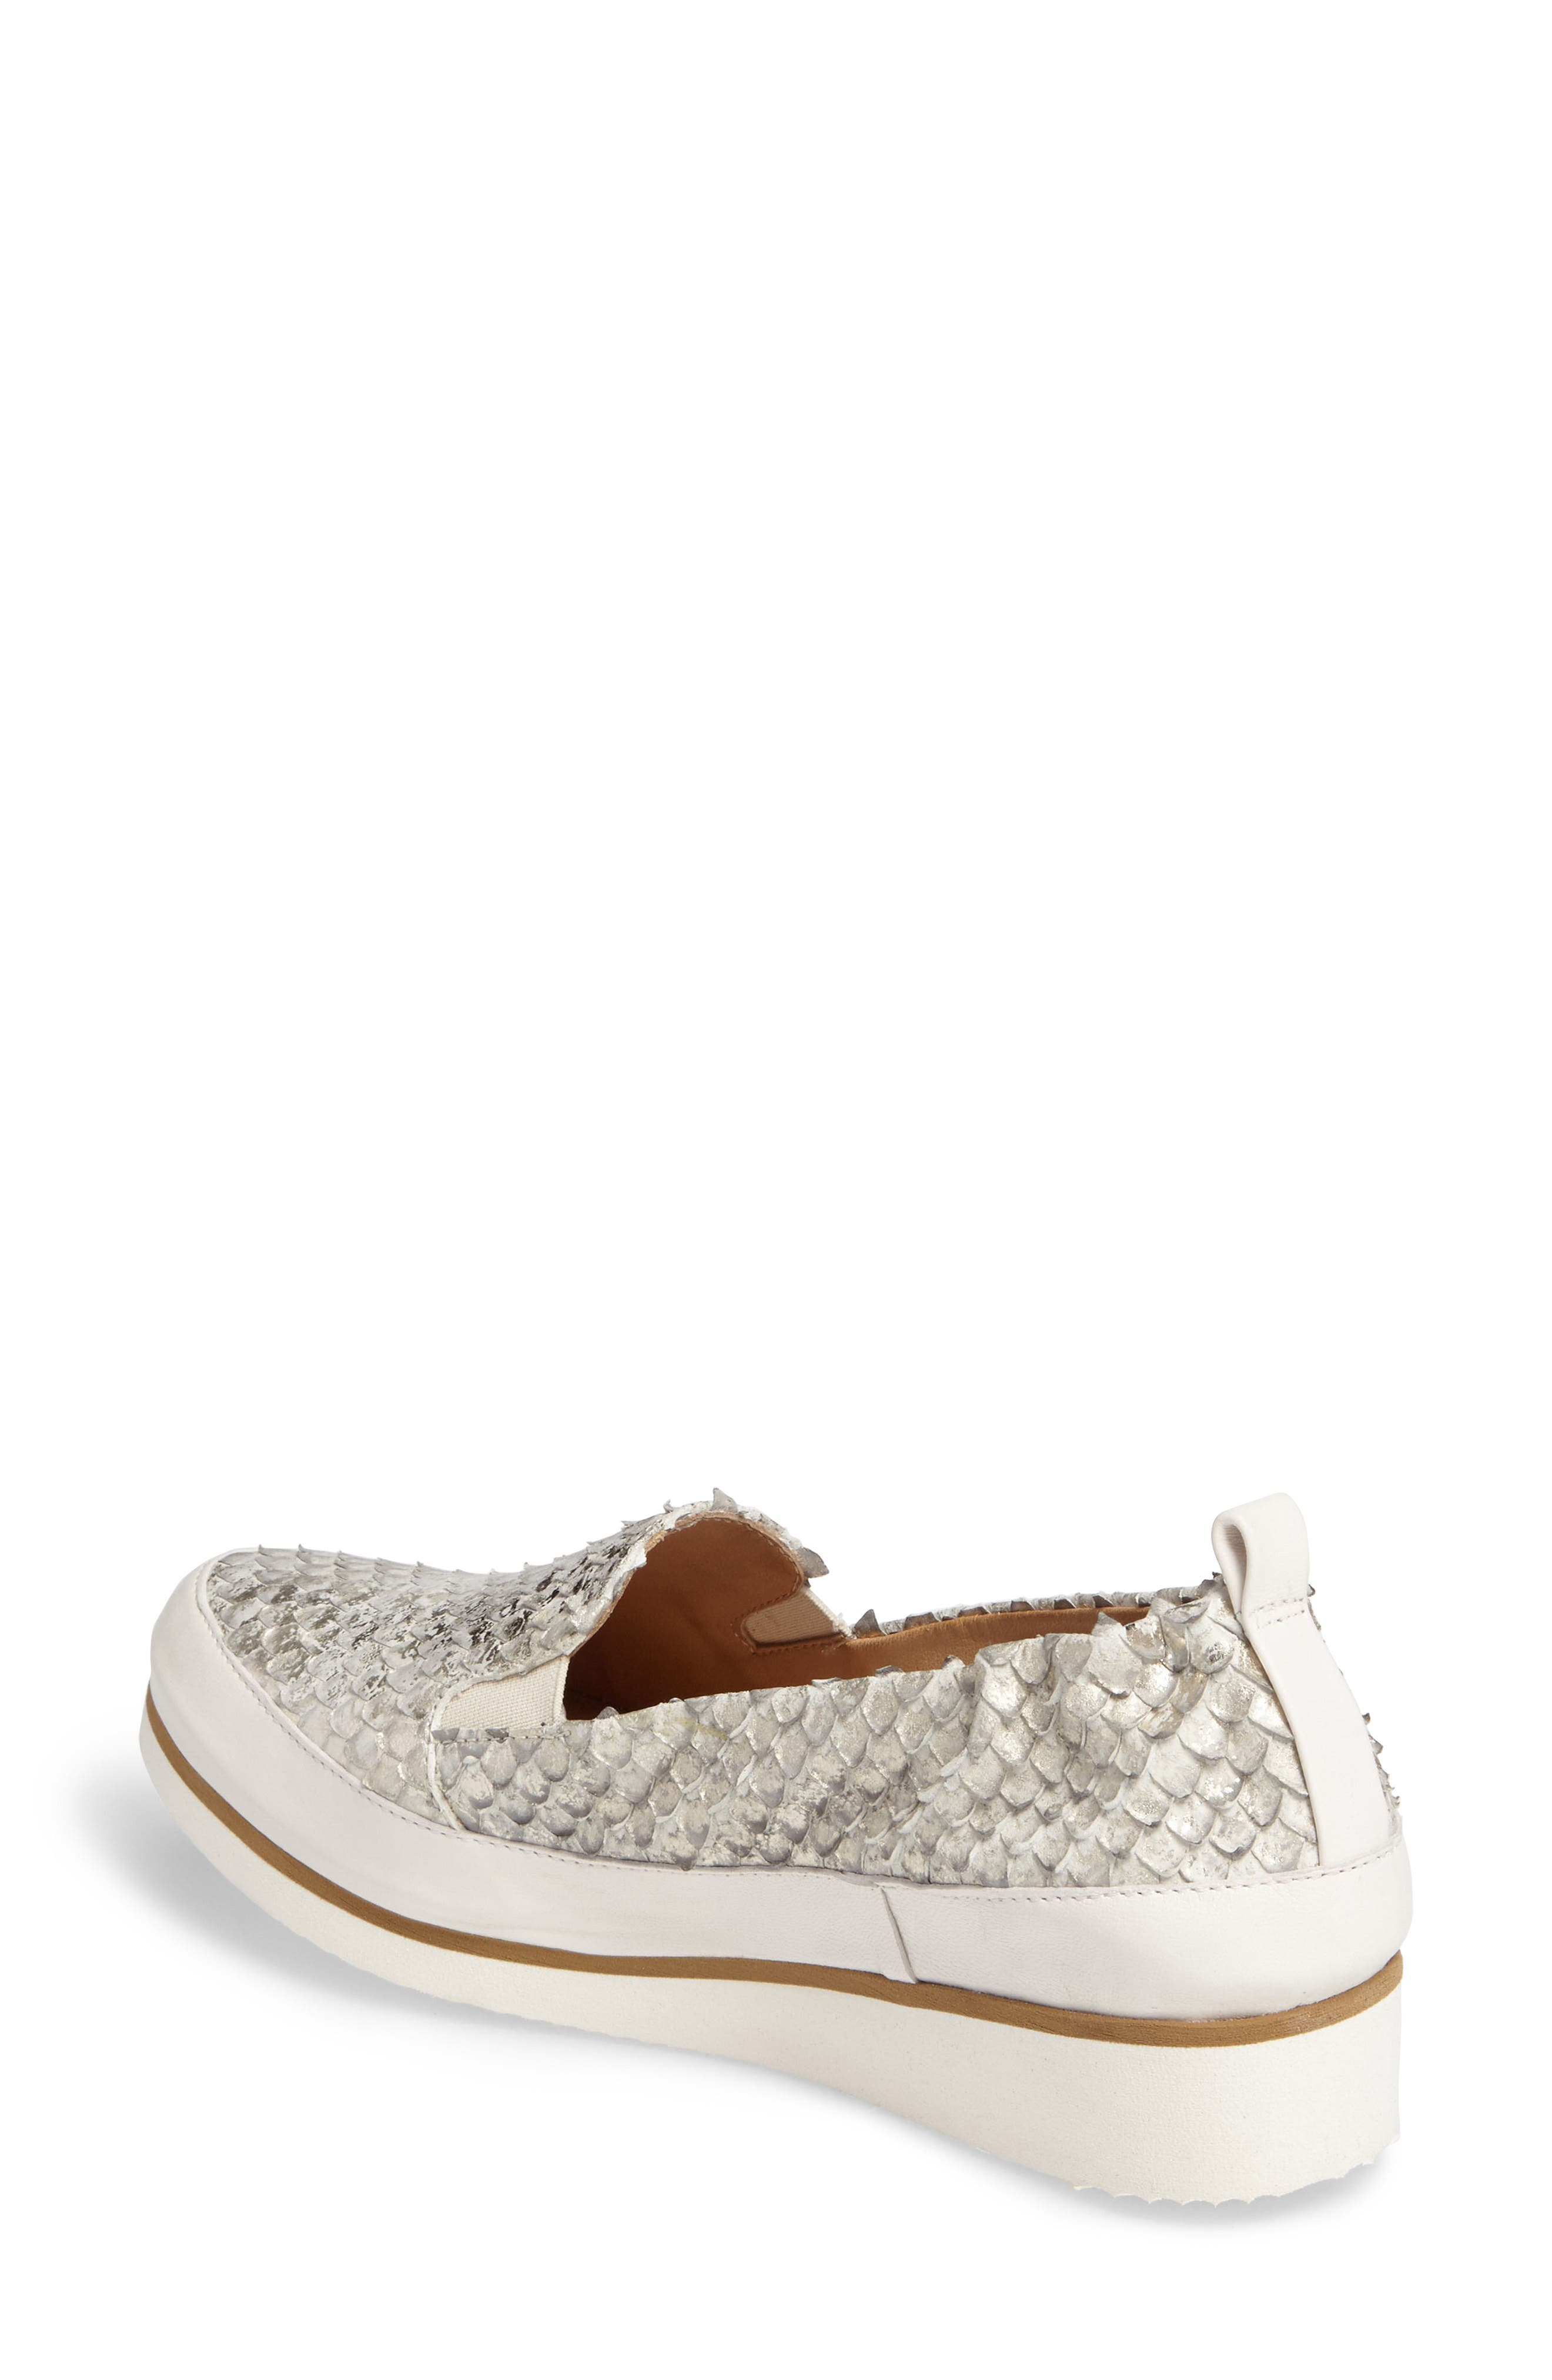 Nell Slip-On Sneaker,                             Alternate thumbnail 12, color,